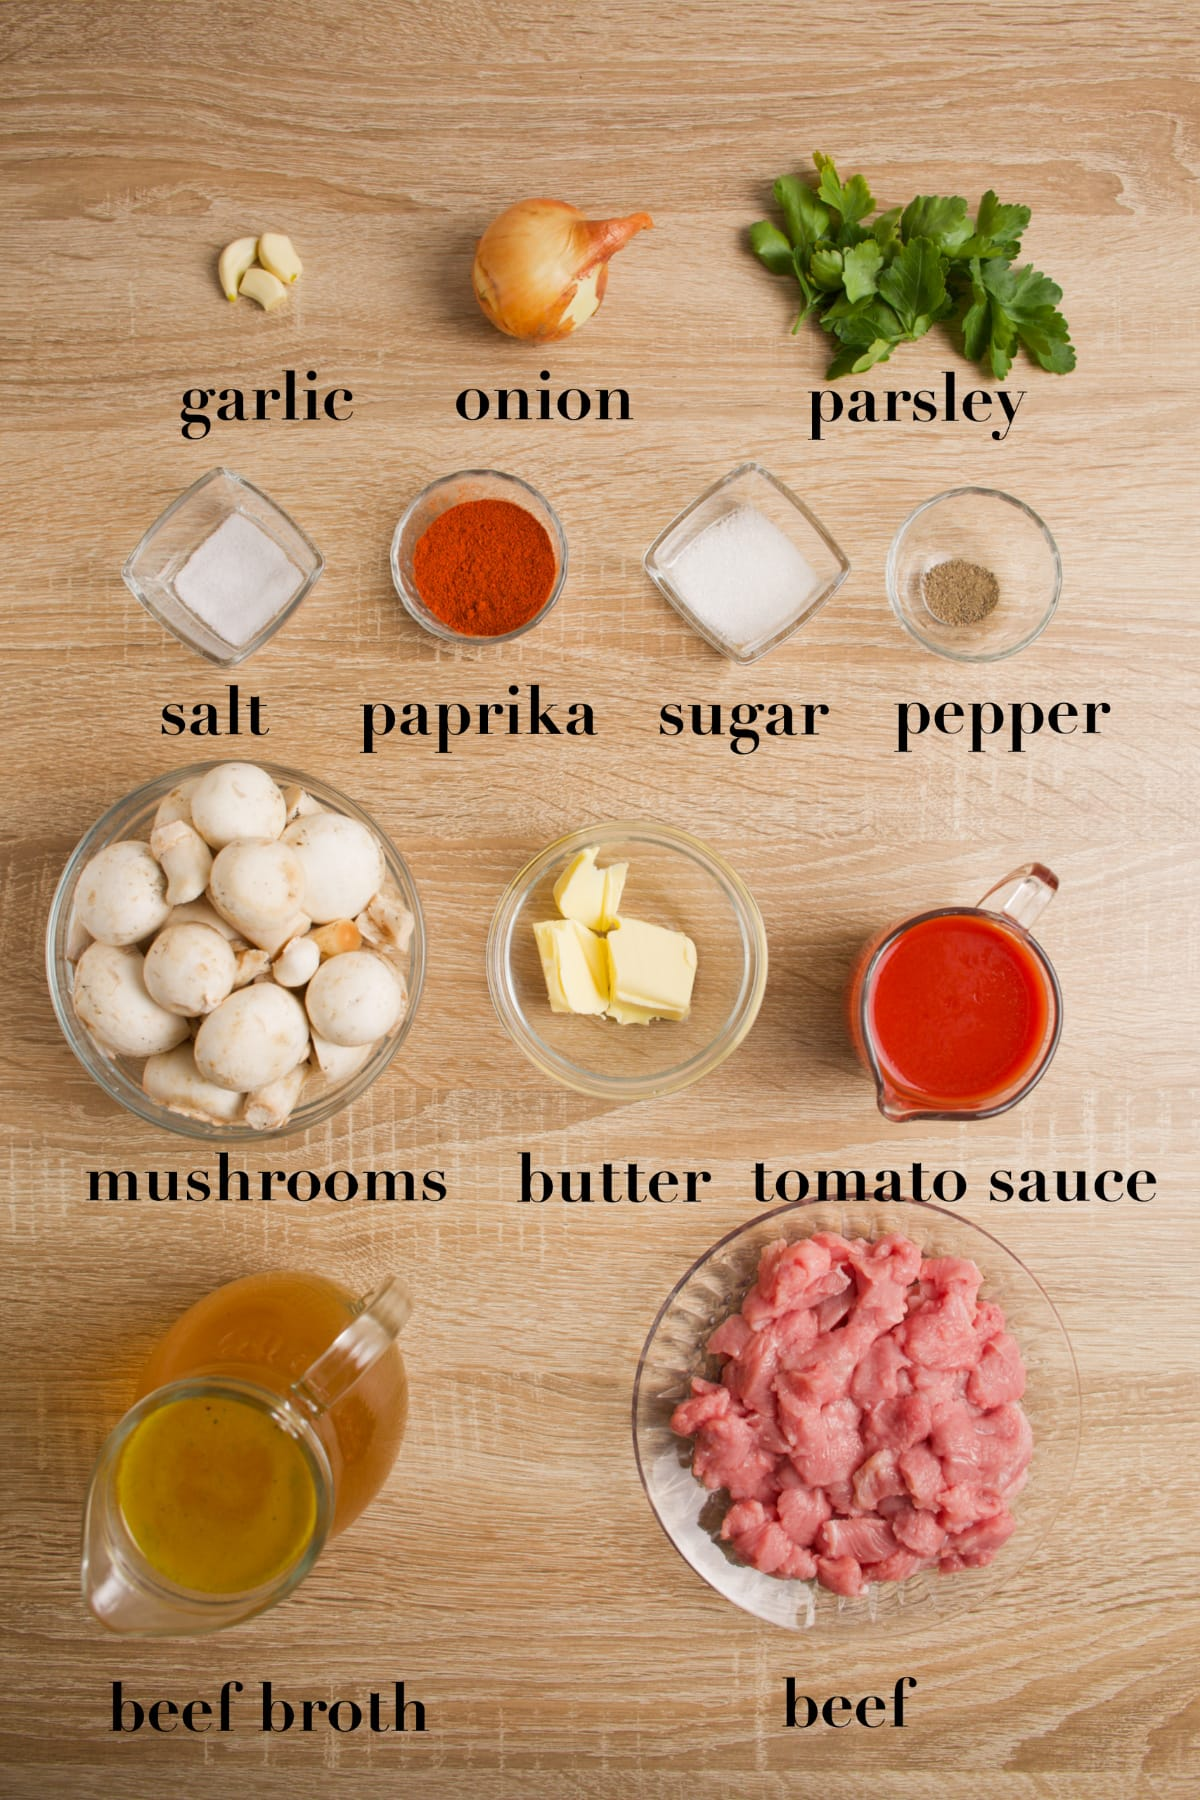 Ingredients needed to make the recipe.